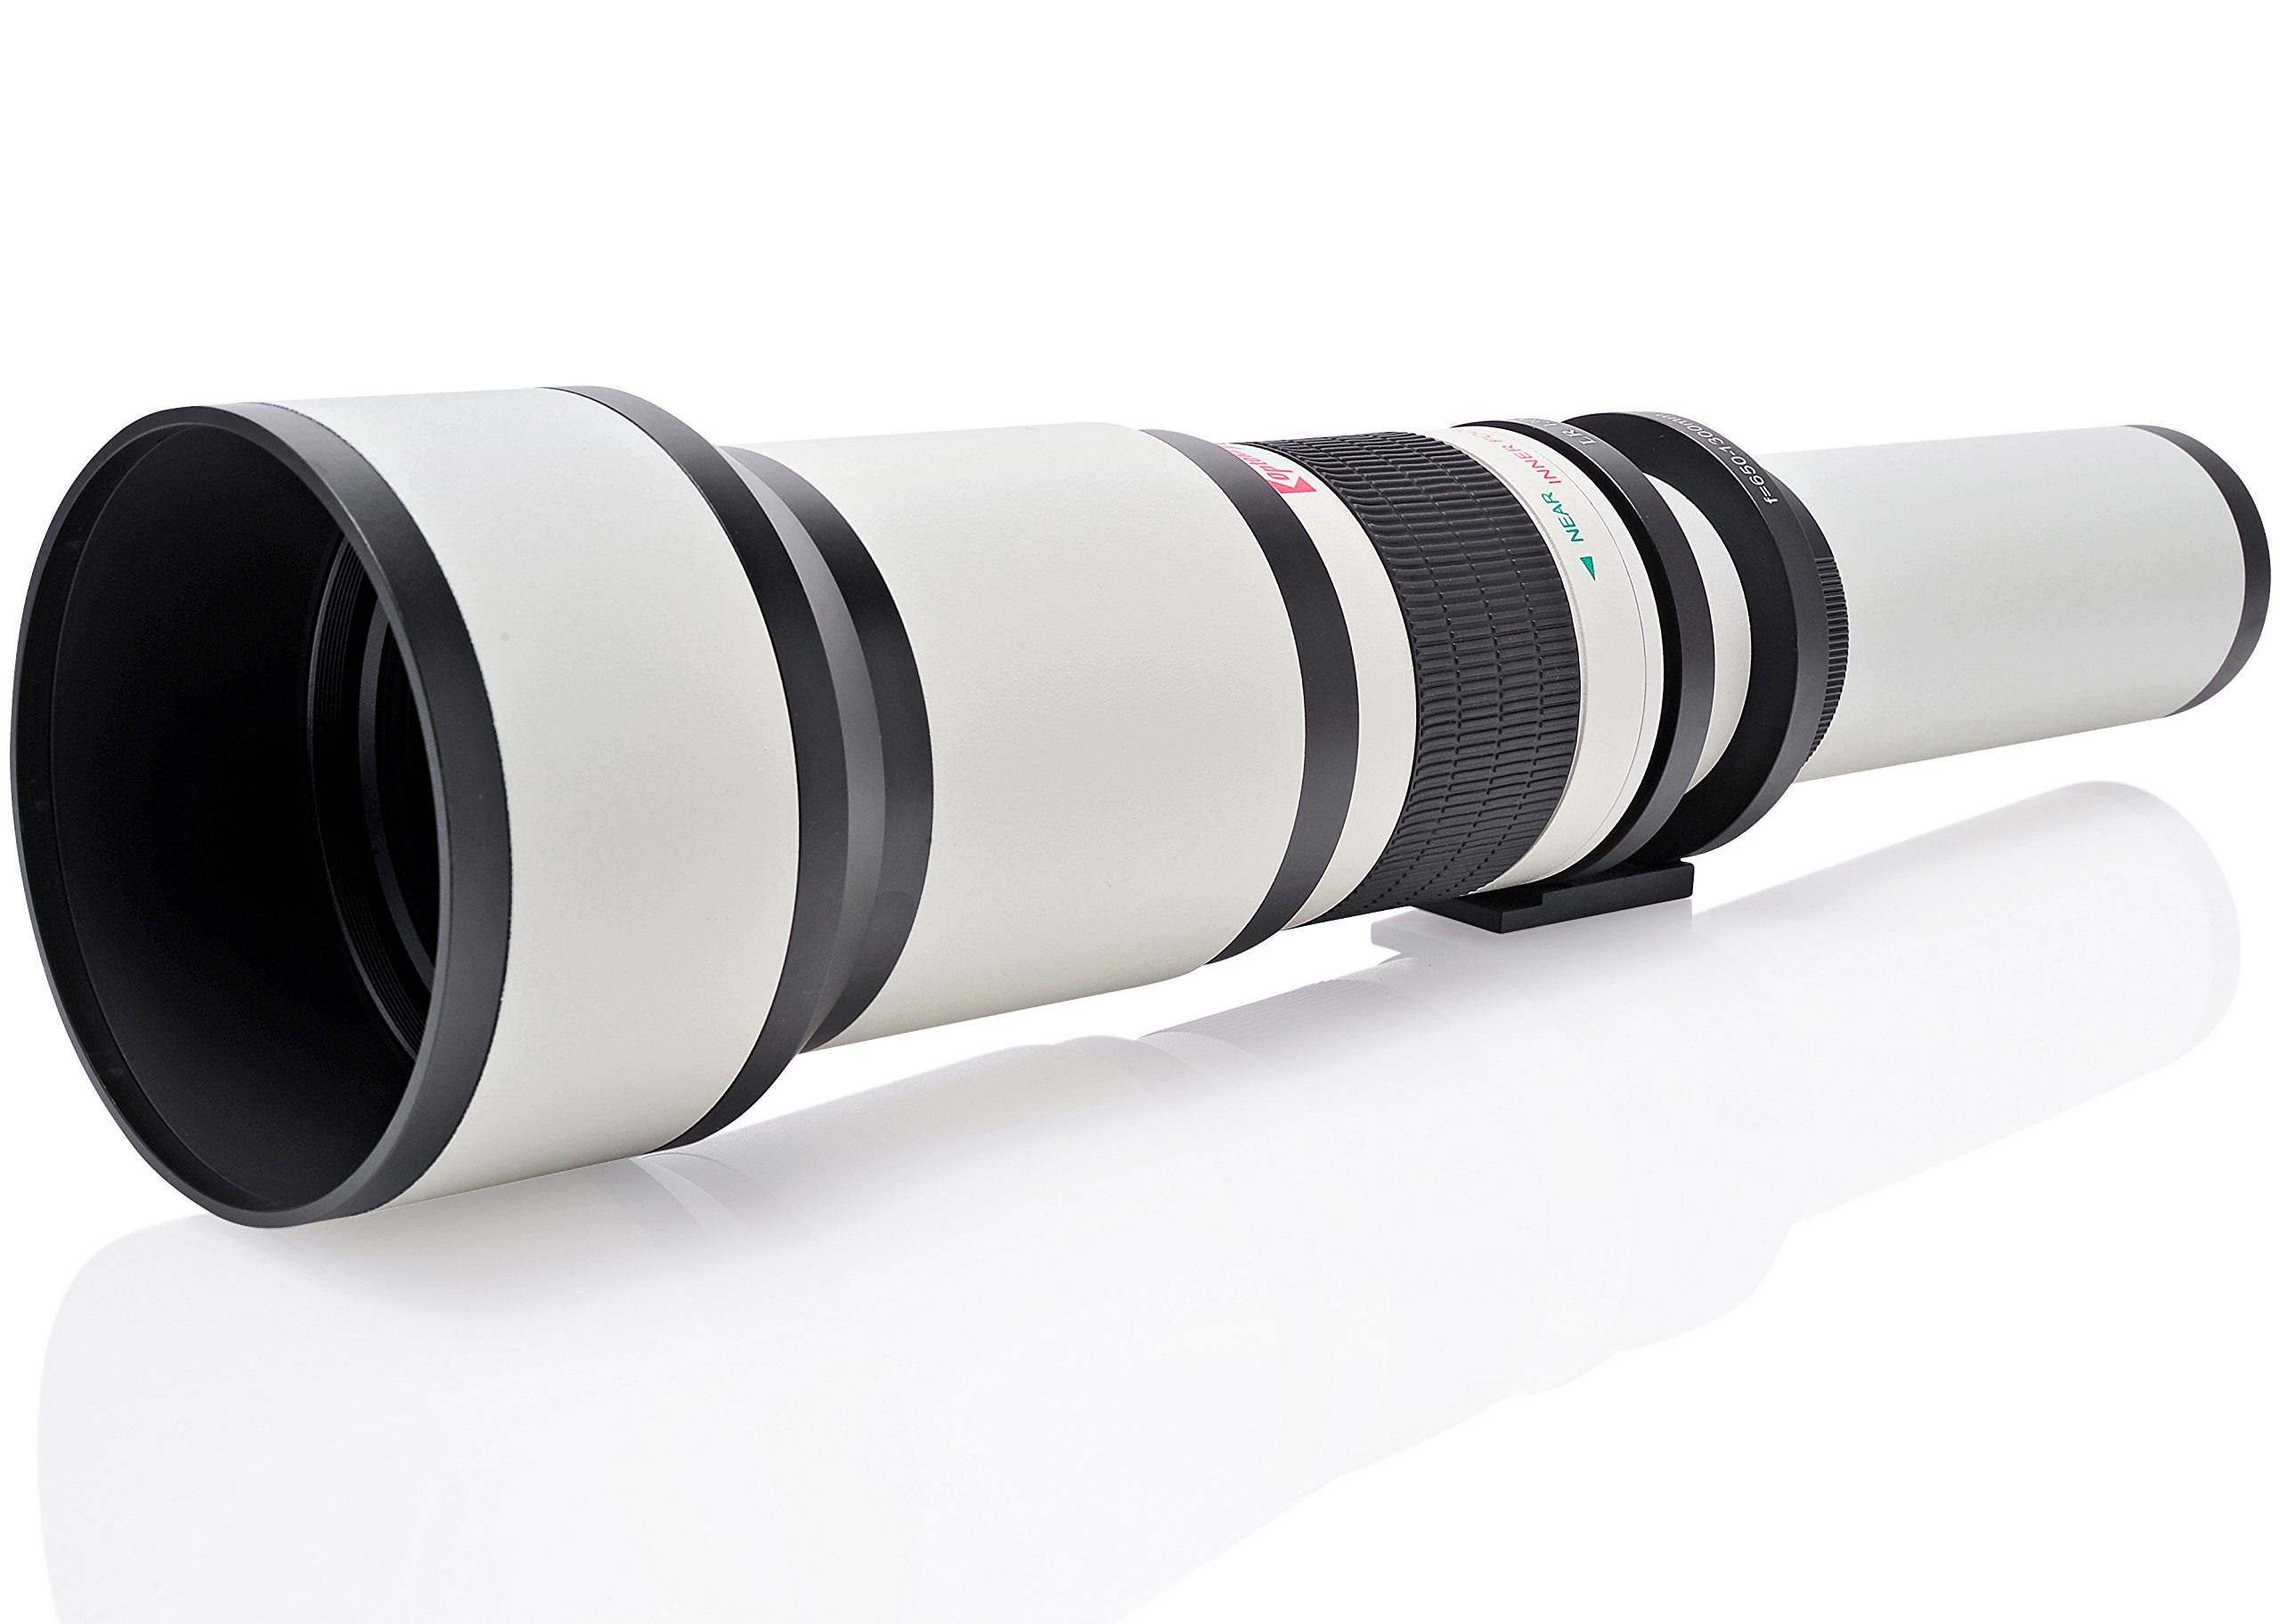 Opteka 650-1300mm f/8 HD Telephoto Zoom Lens for Canon EOS 80D, 77D, 70D, 60D, 60Da, 50D, 7D, 6D, 5D, 5Ds, 1Ds, T7i, T7s, T7, T6s, T6i, T6, T5i, T5, T4i, T3i, T3, T2i, SL2, SL1 Digital SLR Cameras